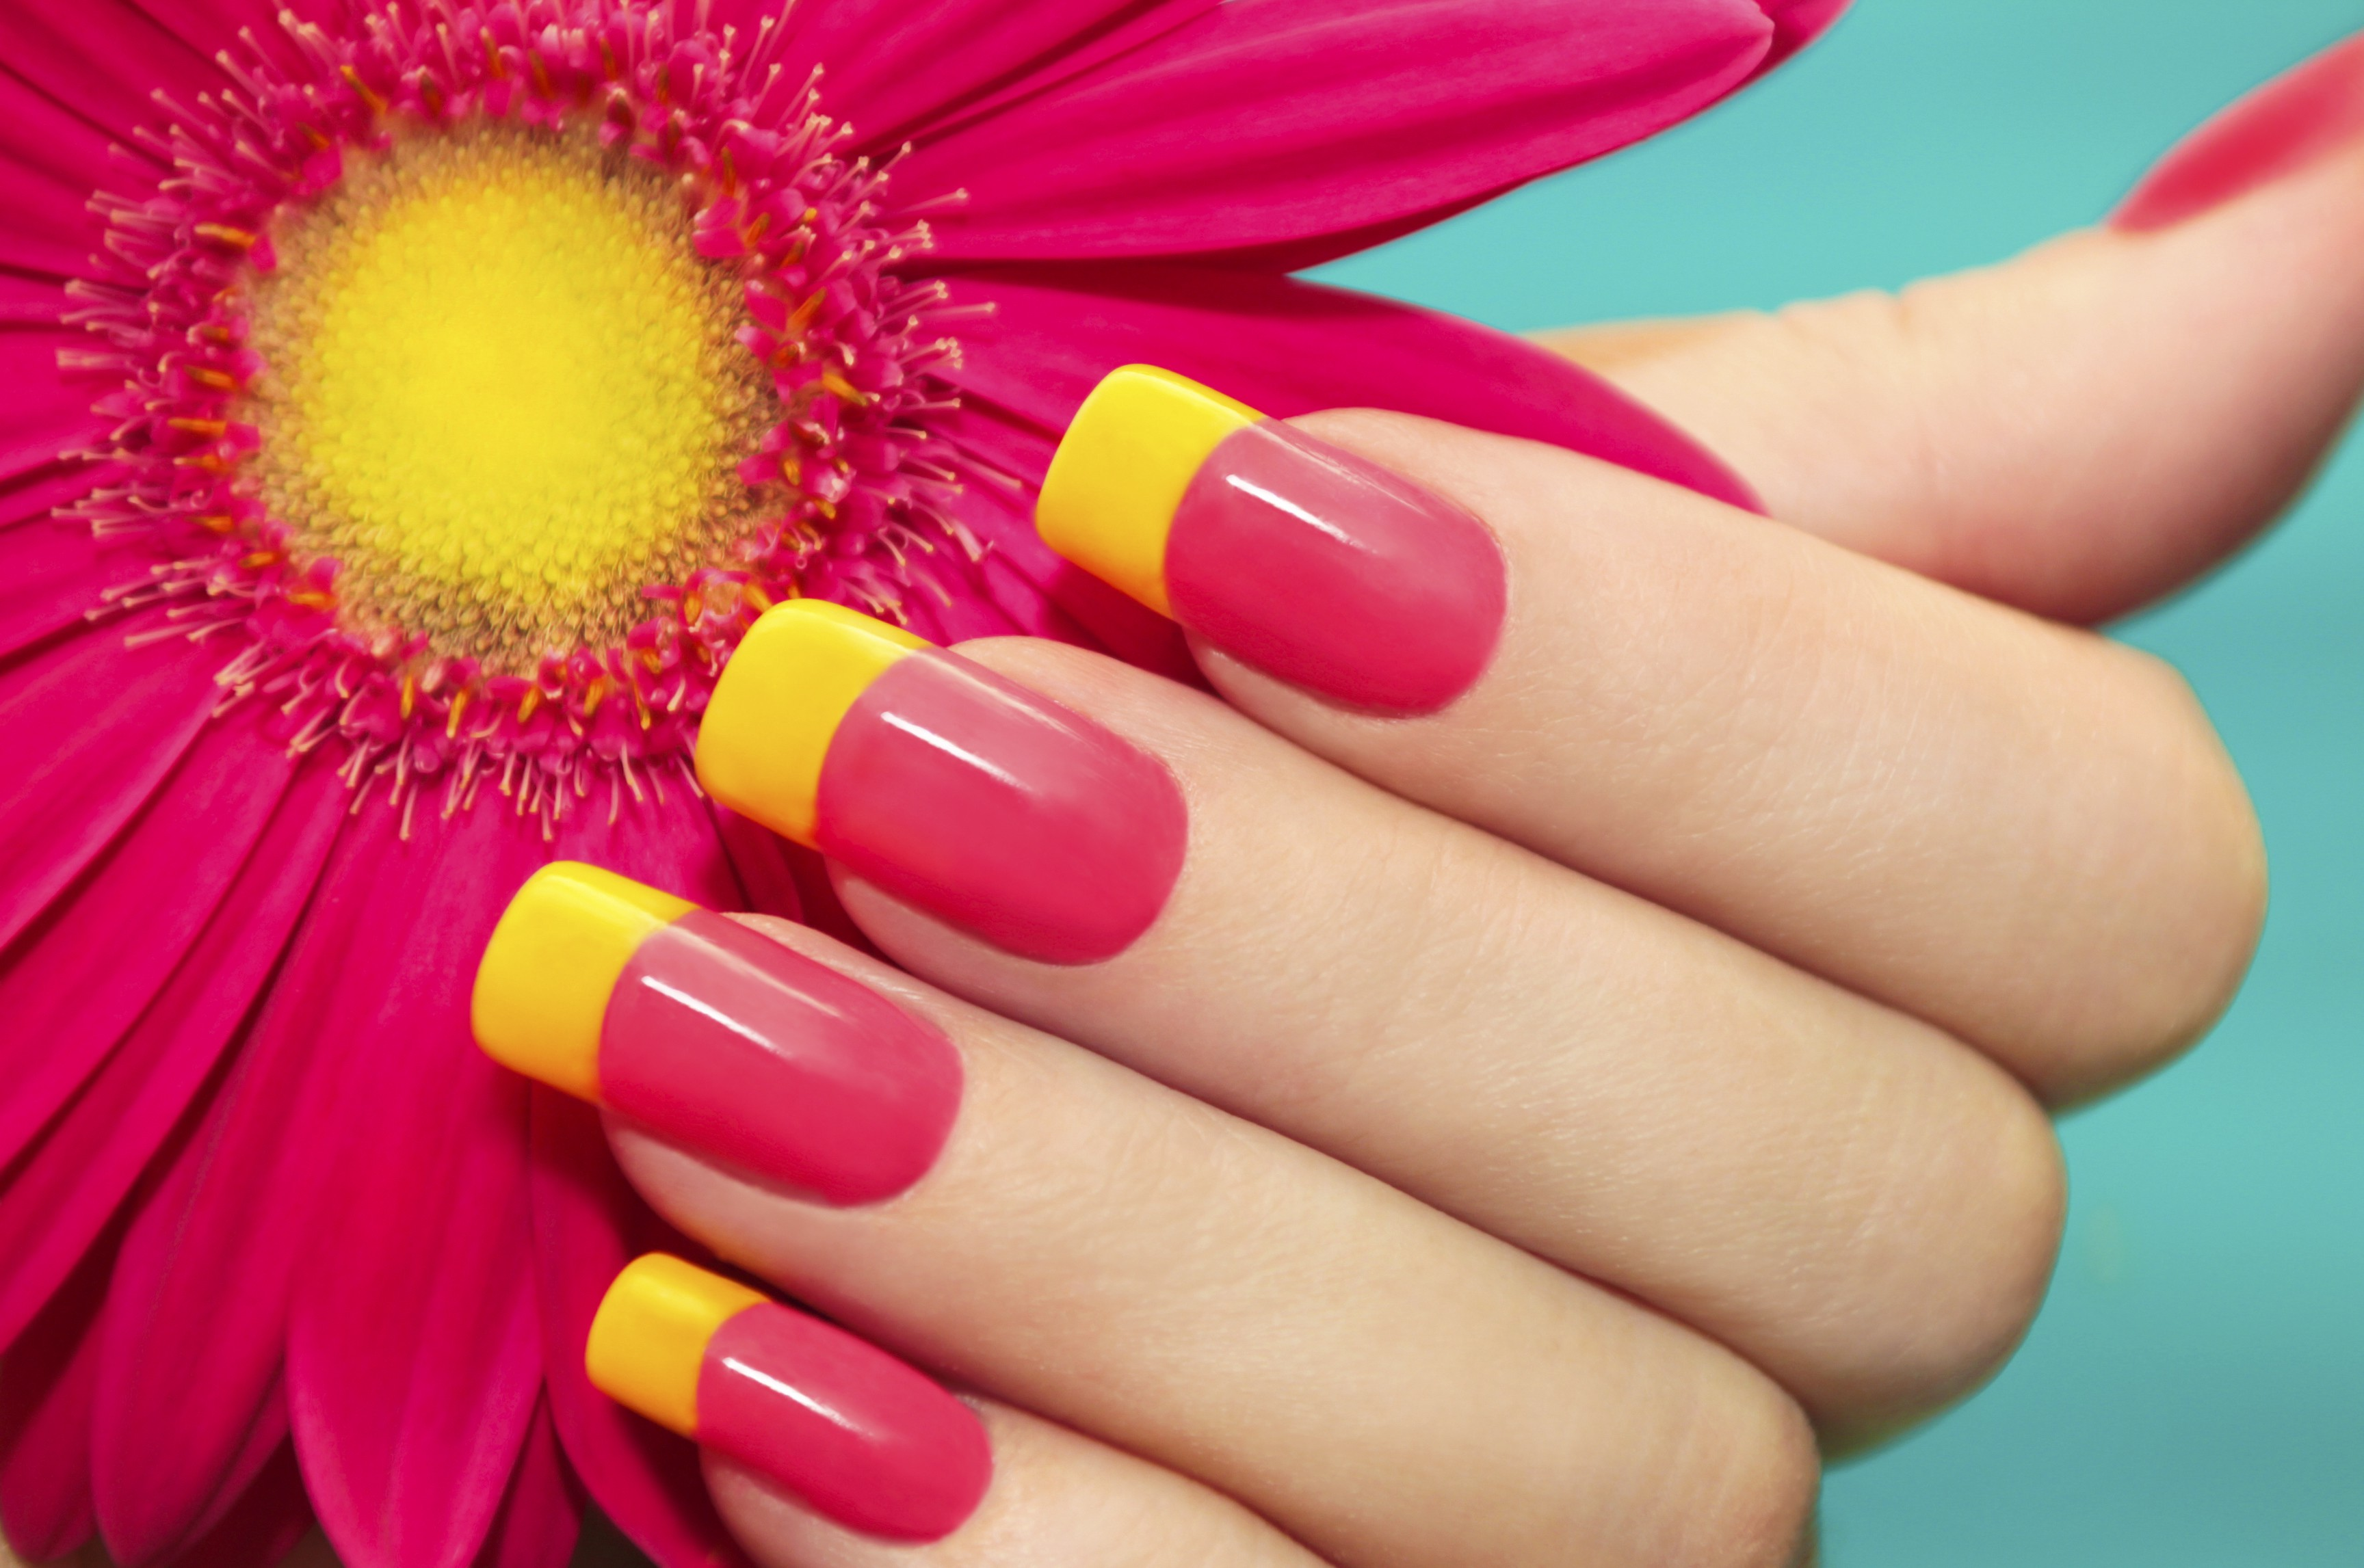 Make your nails summer ready with these bright matte nail paints